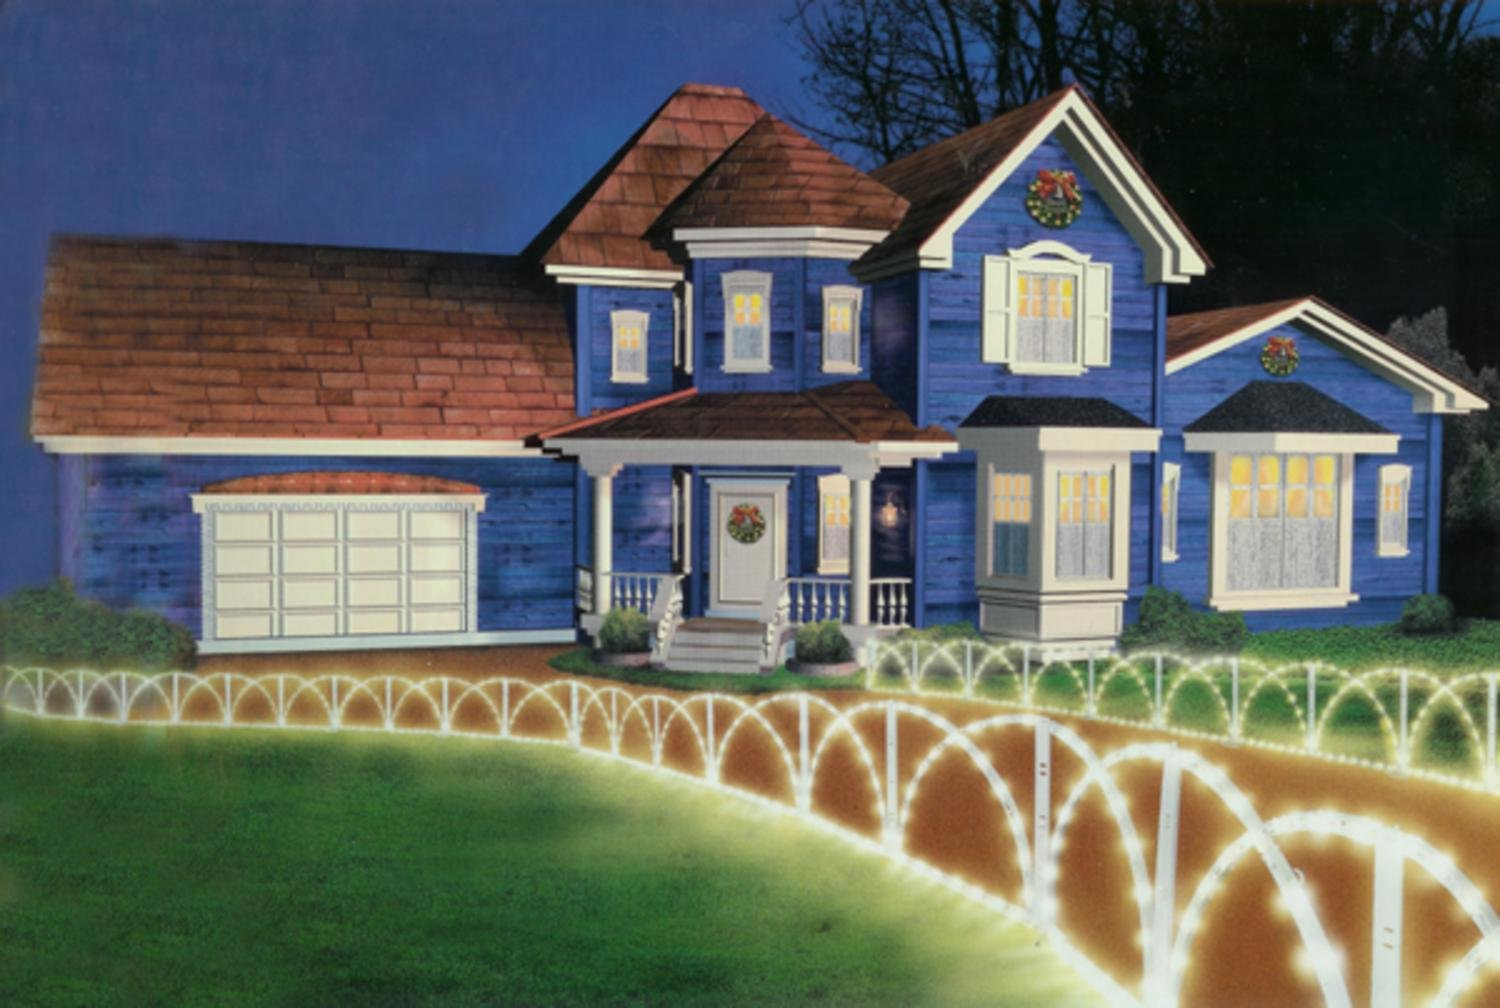 Hofert 7.5' Lighted White Christmas Pathway Fence Lawn Stakes - Clear Lights